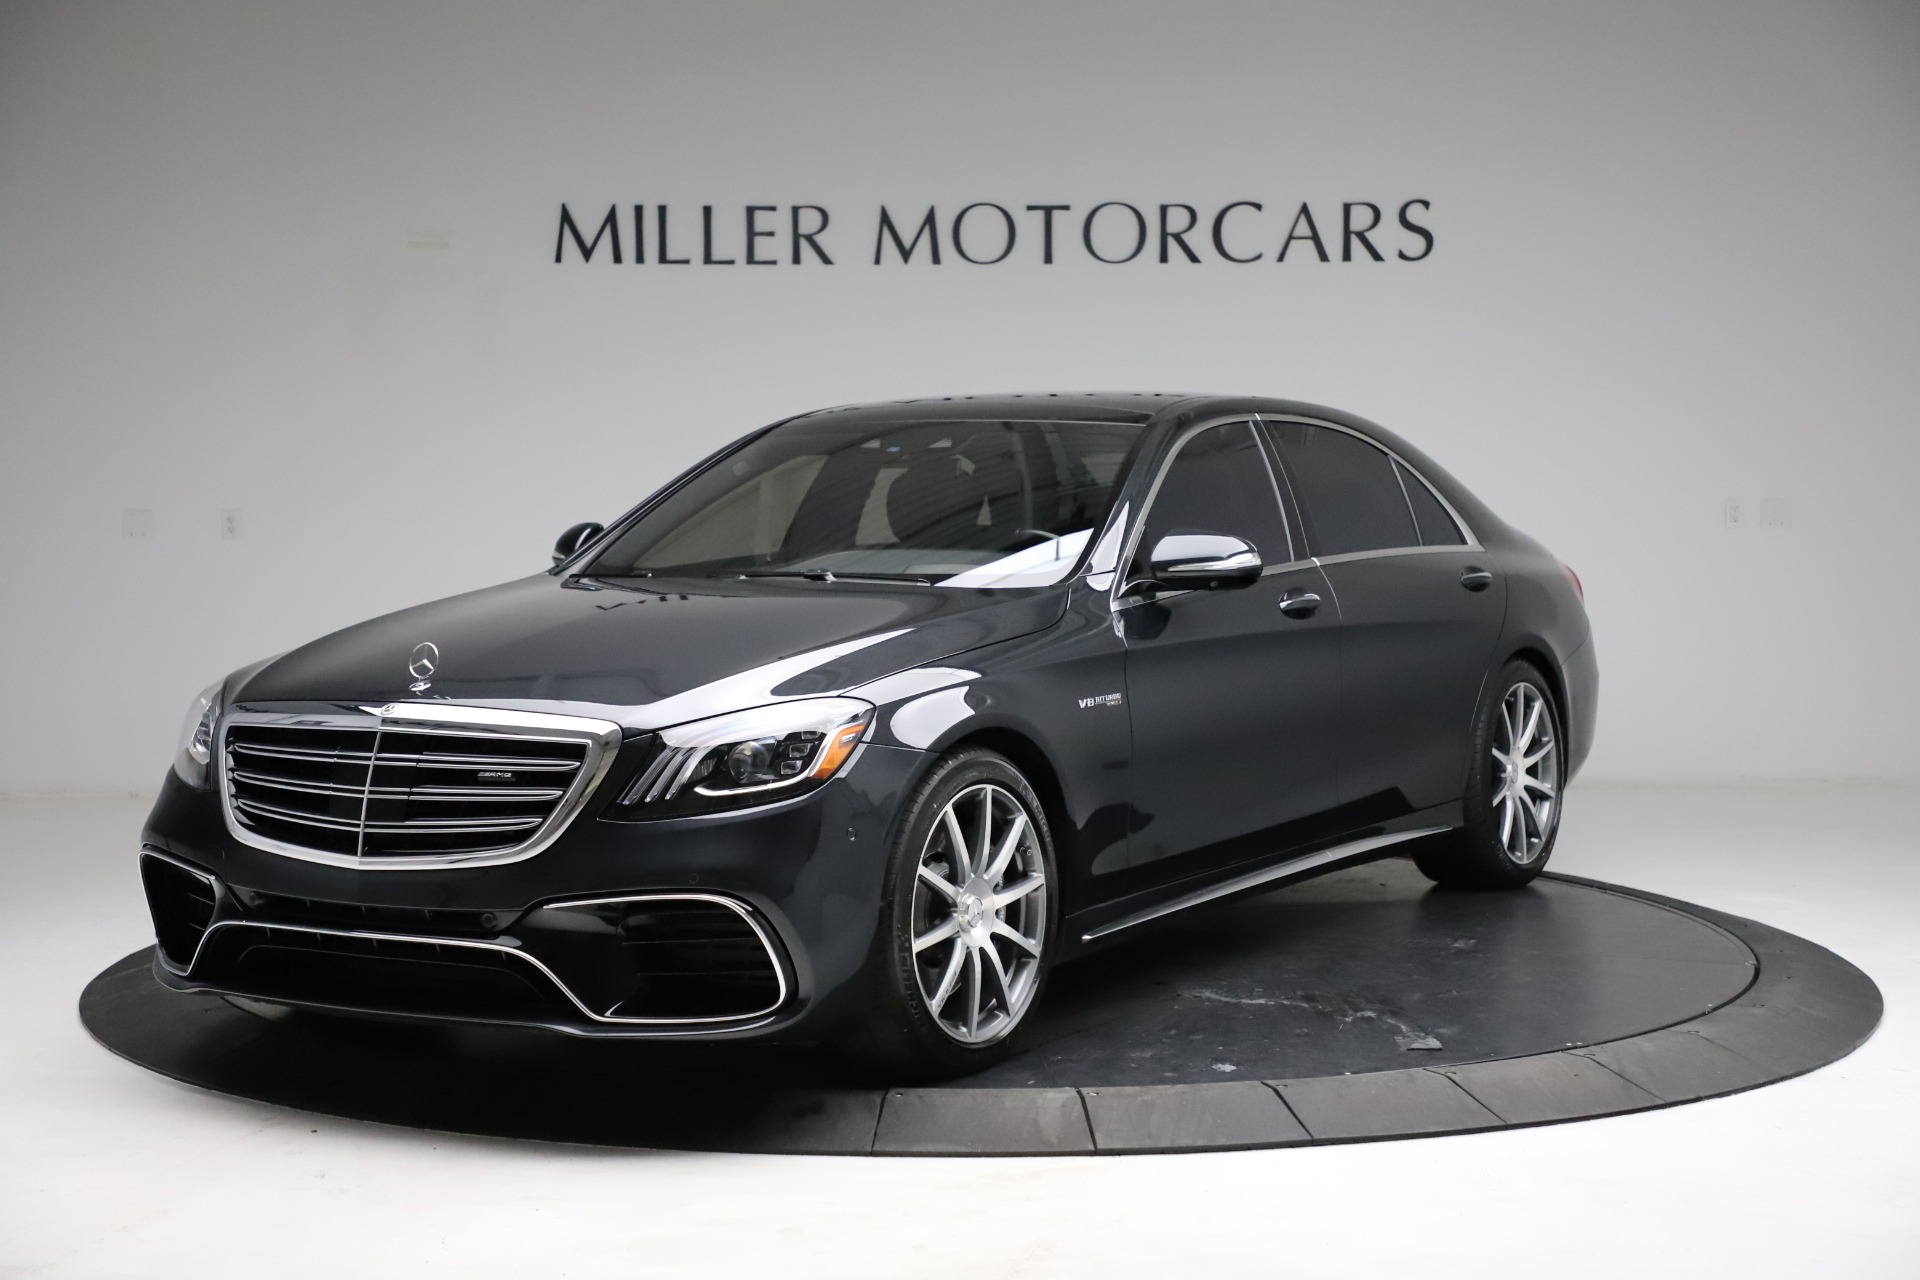 Used 2019 Mercedes-Benz S-Class AMG S 63 for sale $122,900 at Alfa Romeo of Westport in Westport CT 06880 1